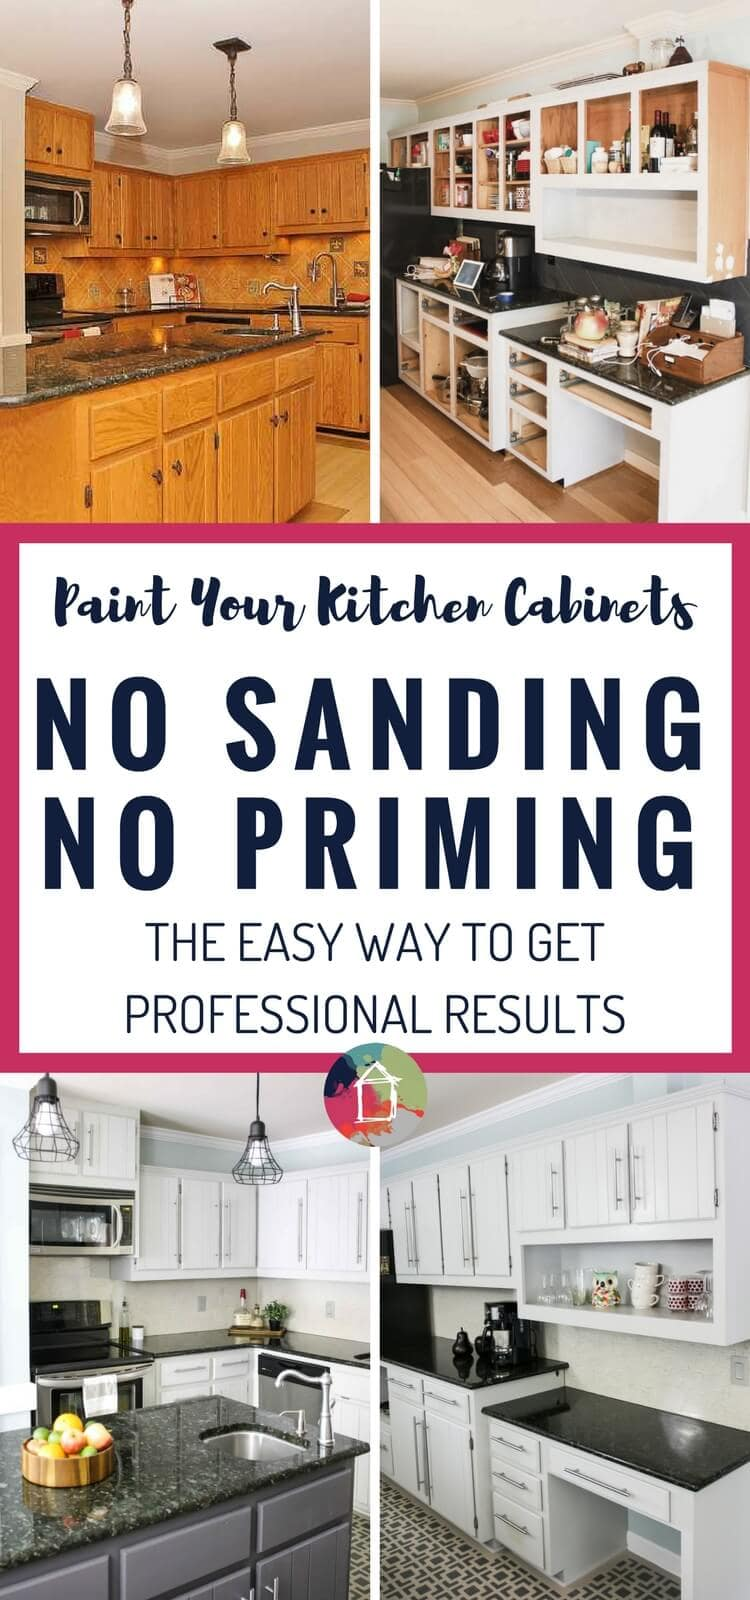 How To Paint Kitchen Cabinets Without Sanding Or Priming Step By Even Where A Range Hood Contains Its Own Switch An Additional